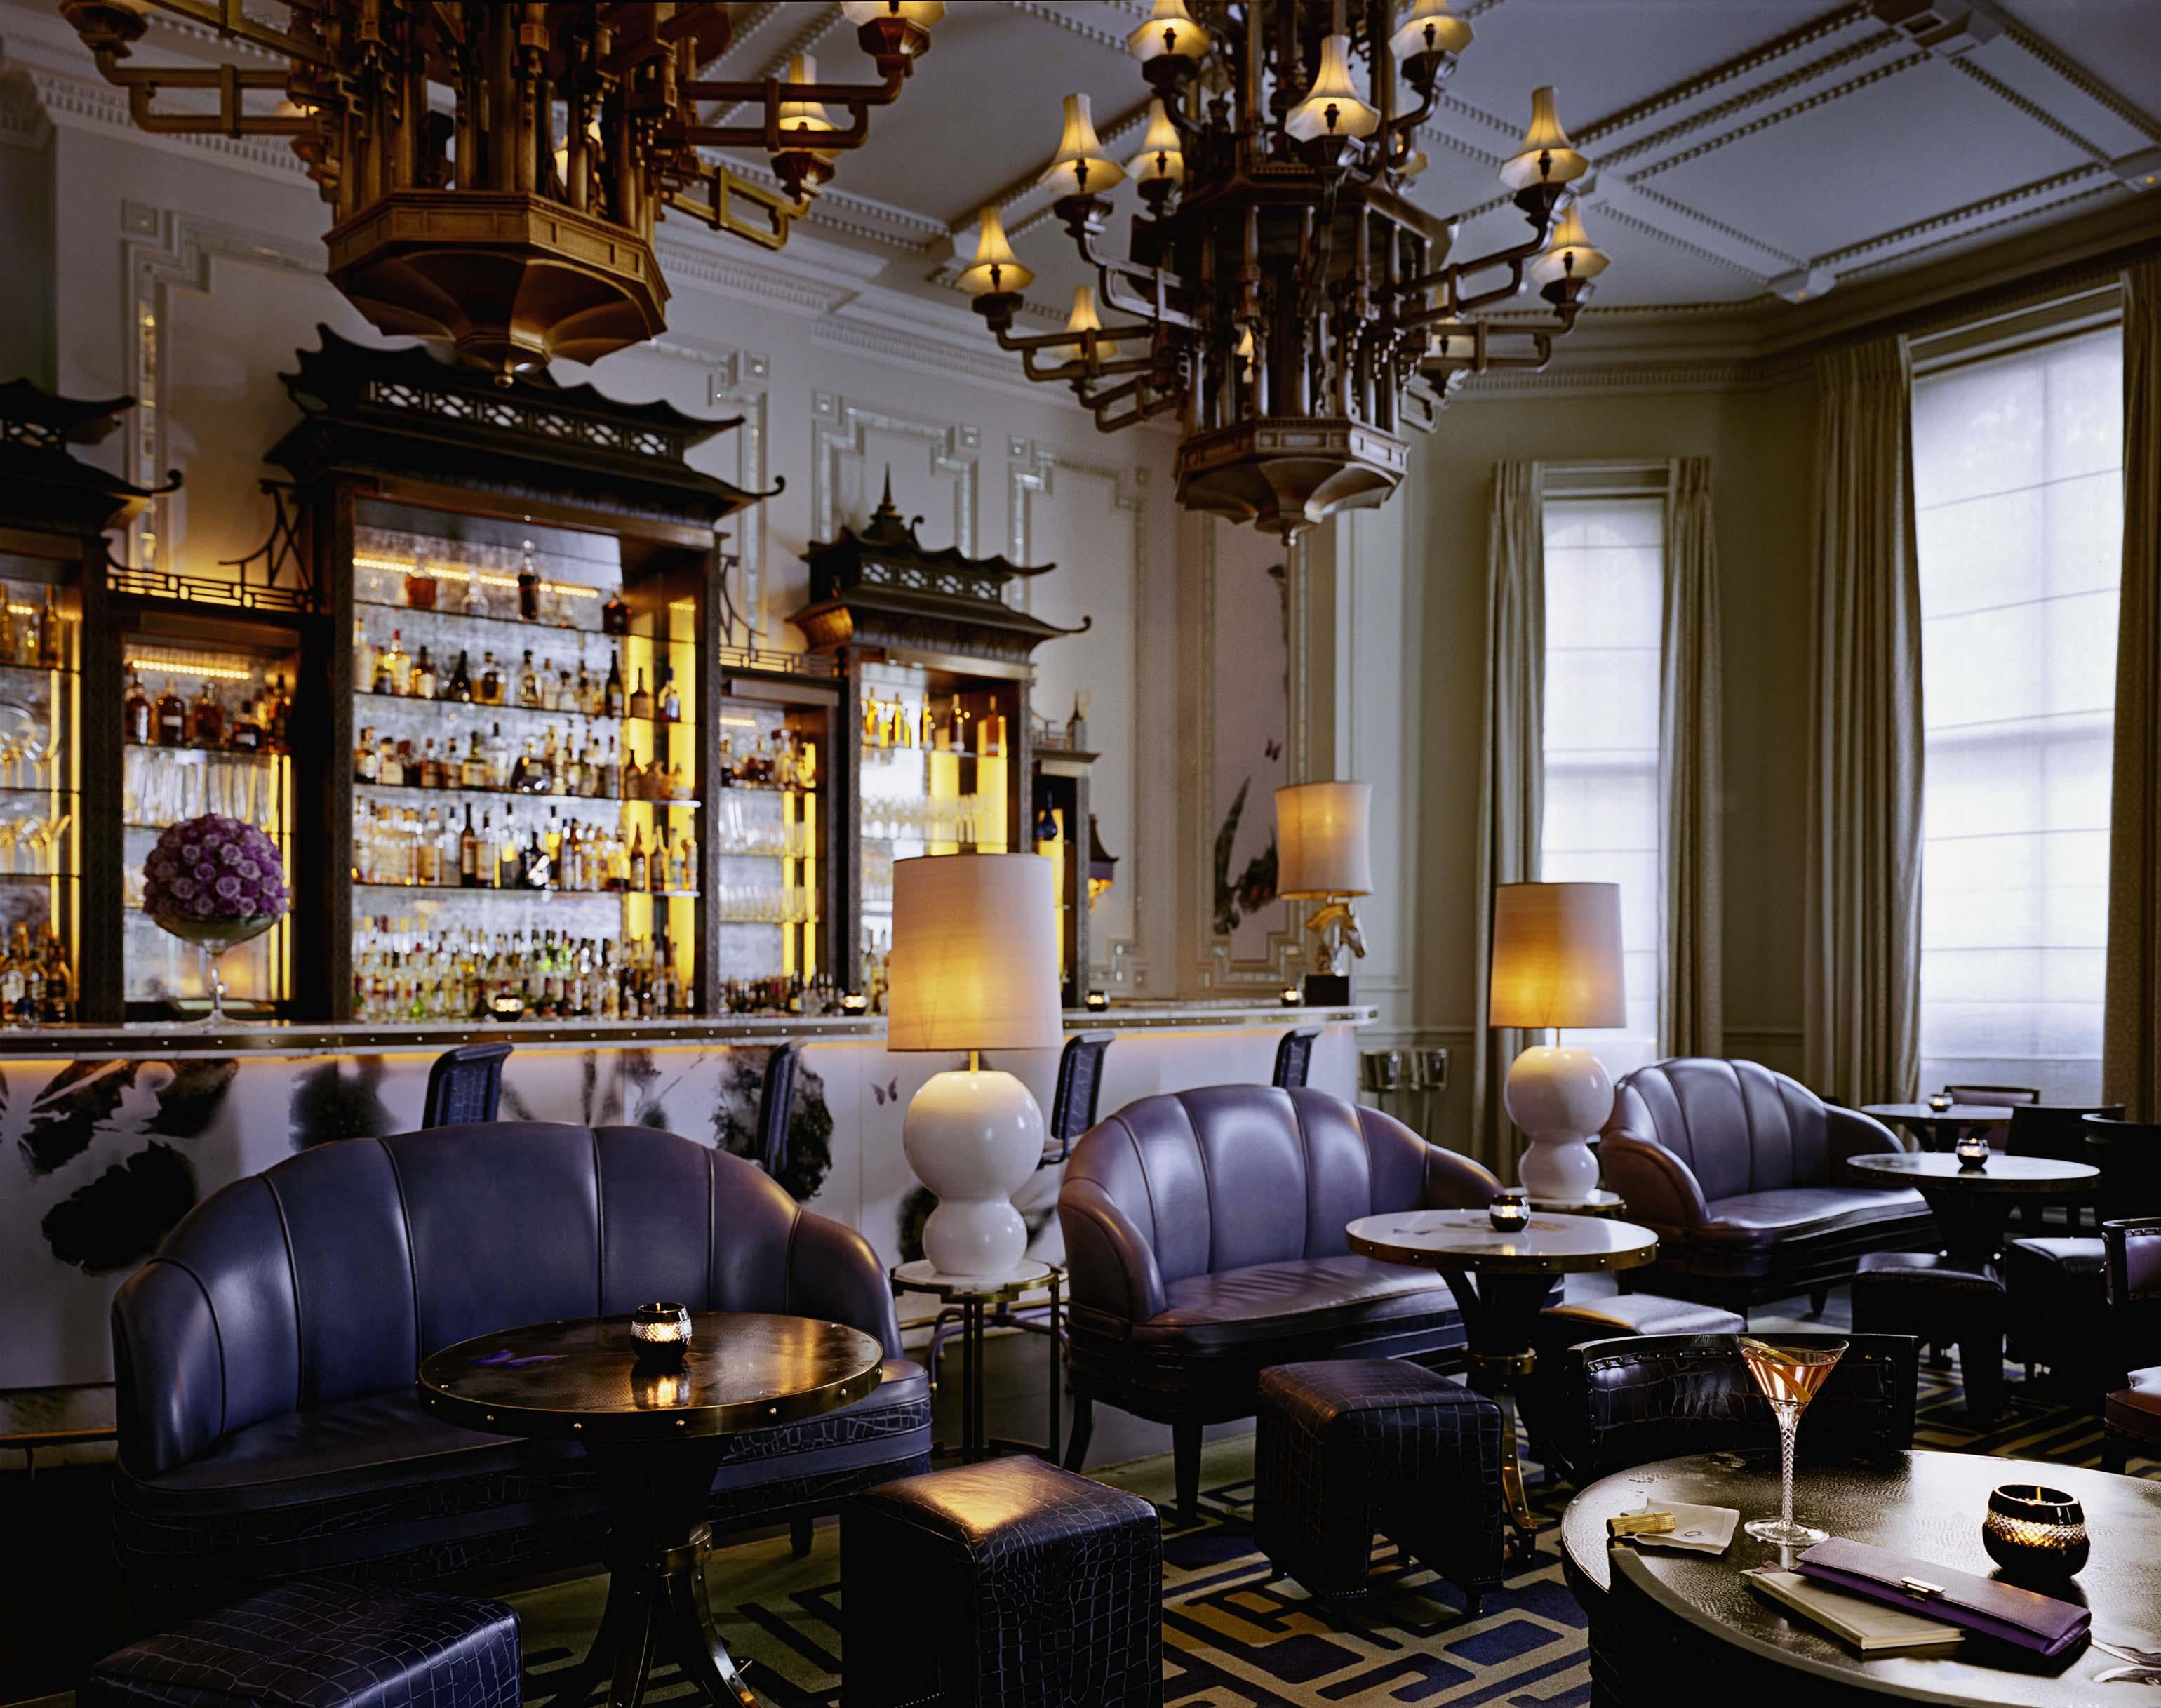 World's best bar: The Artesian in London